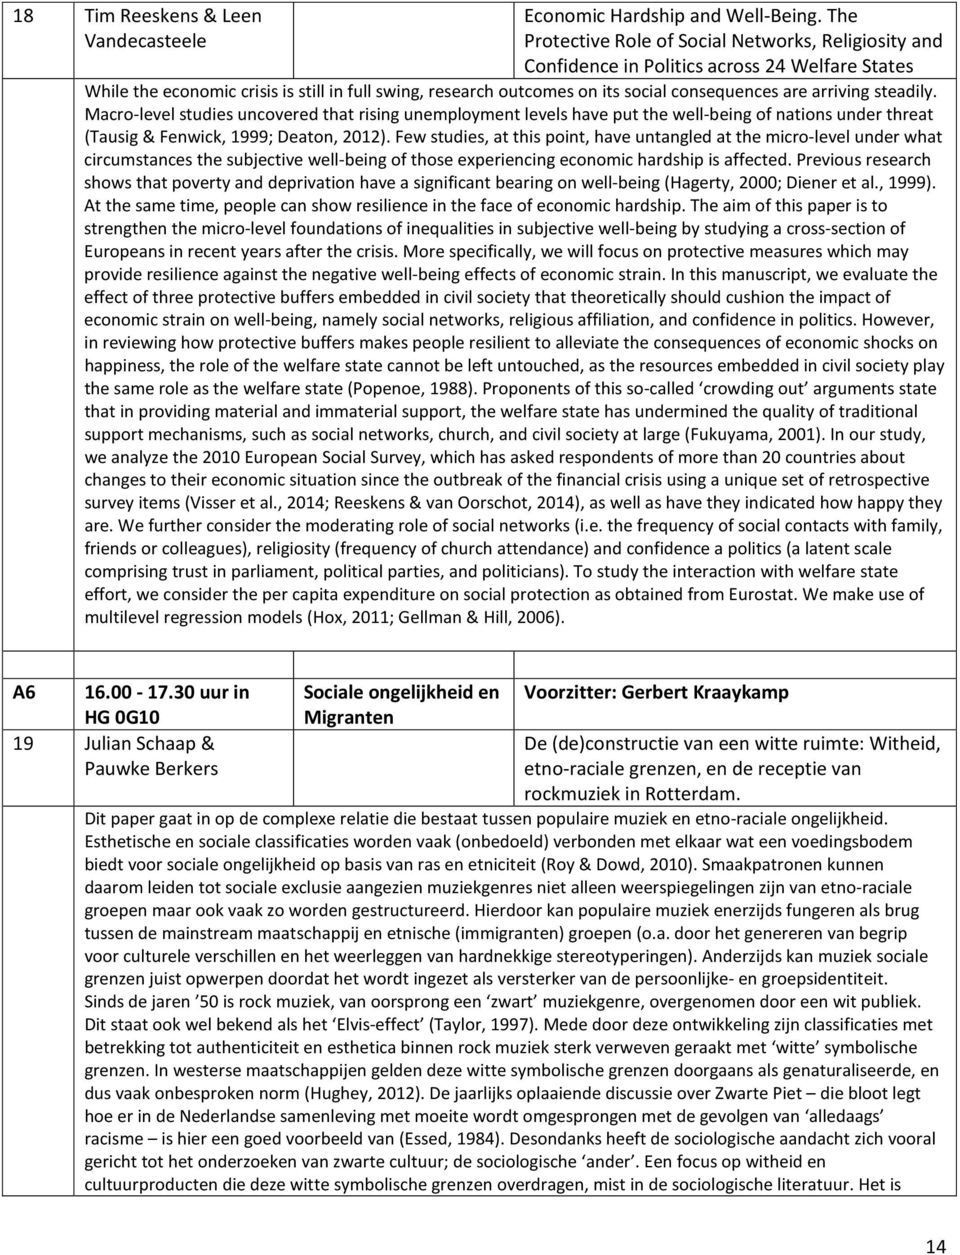 are arriving steadily. Macro-level studies uncovered that rising unemployment levels have put the well-being of nations under threat (Tausig & Fenwick, 1999; Deaton, 2012).